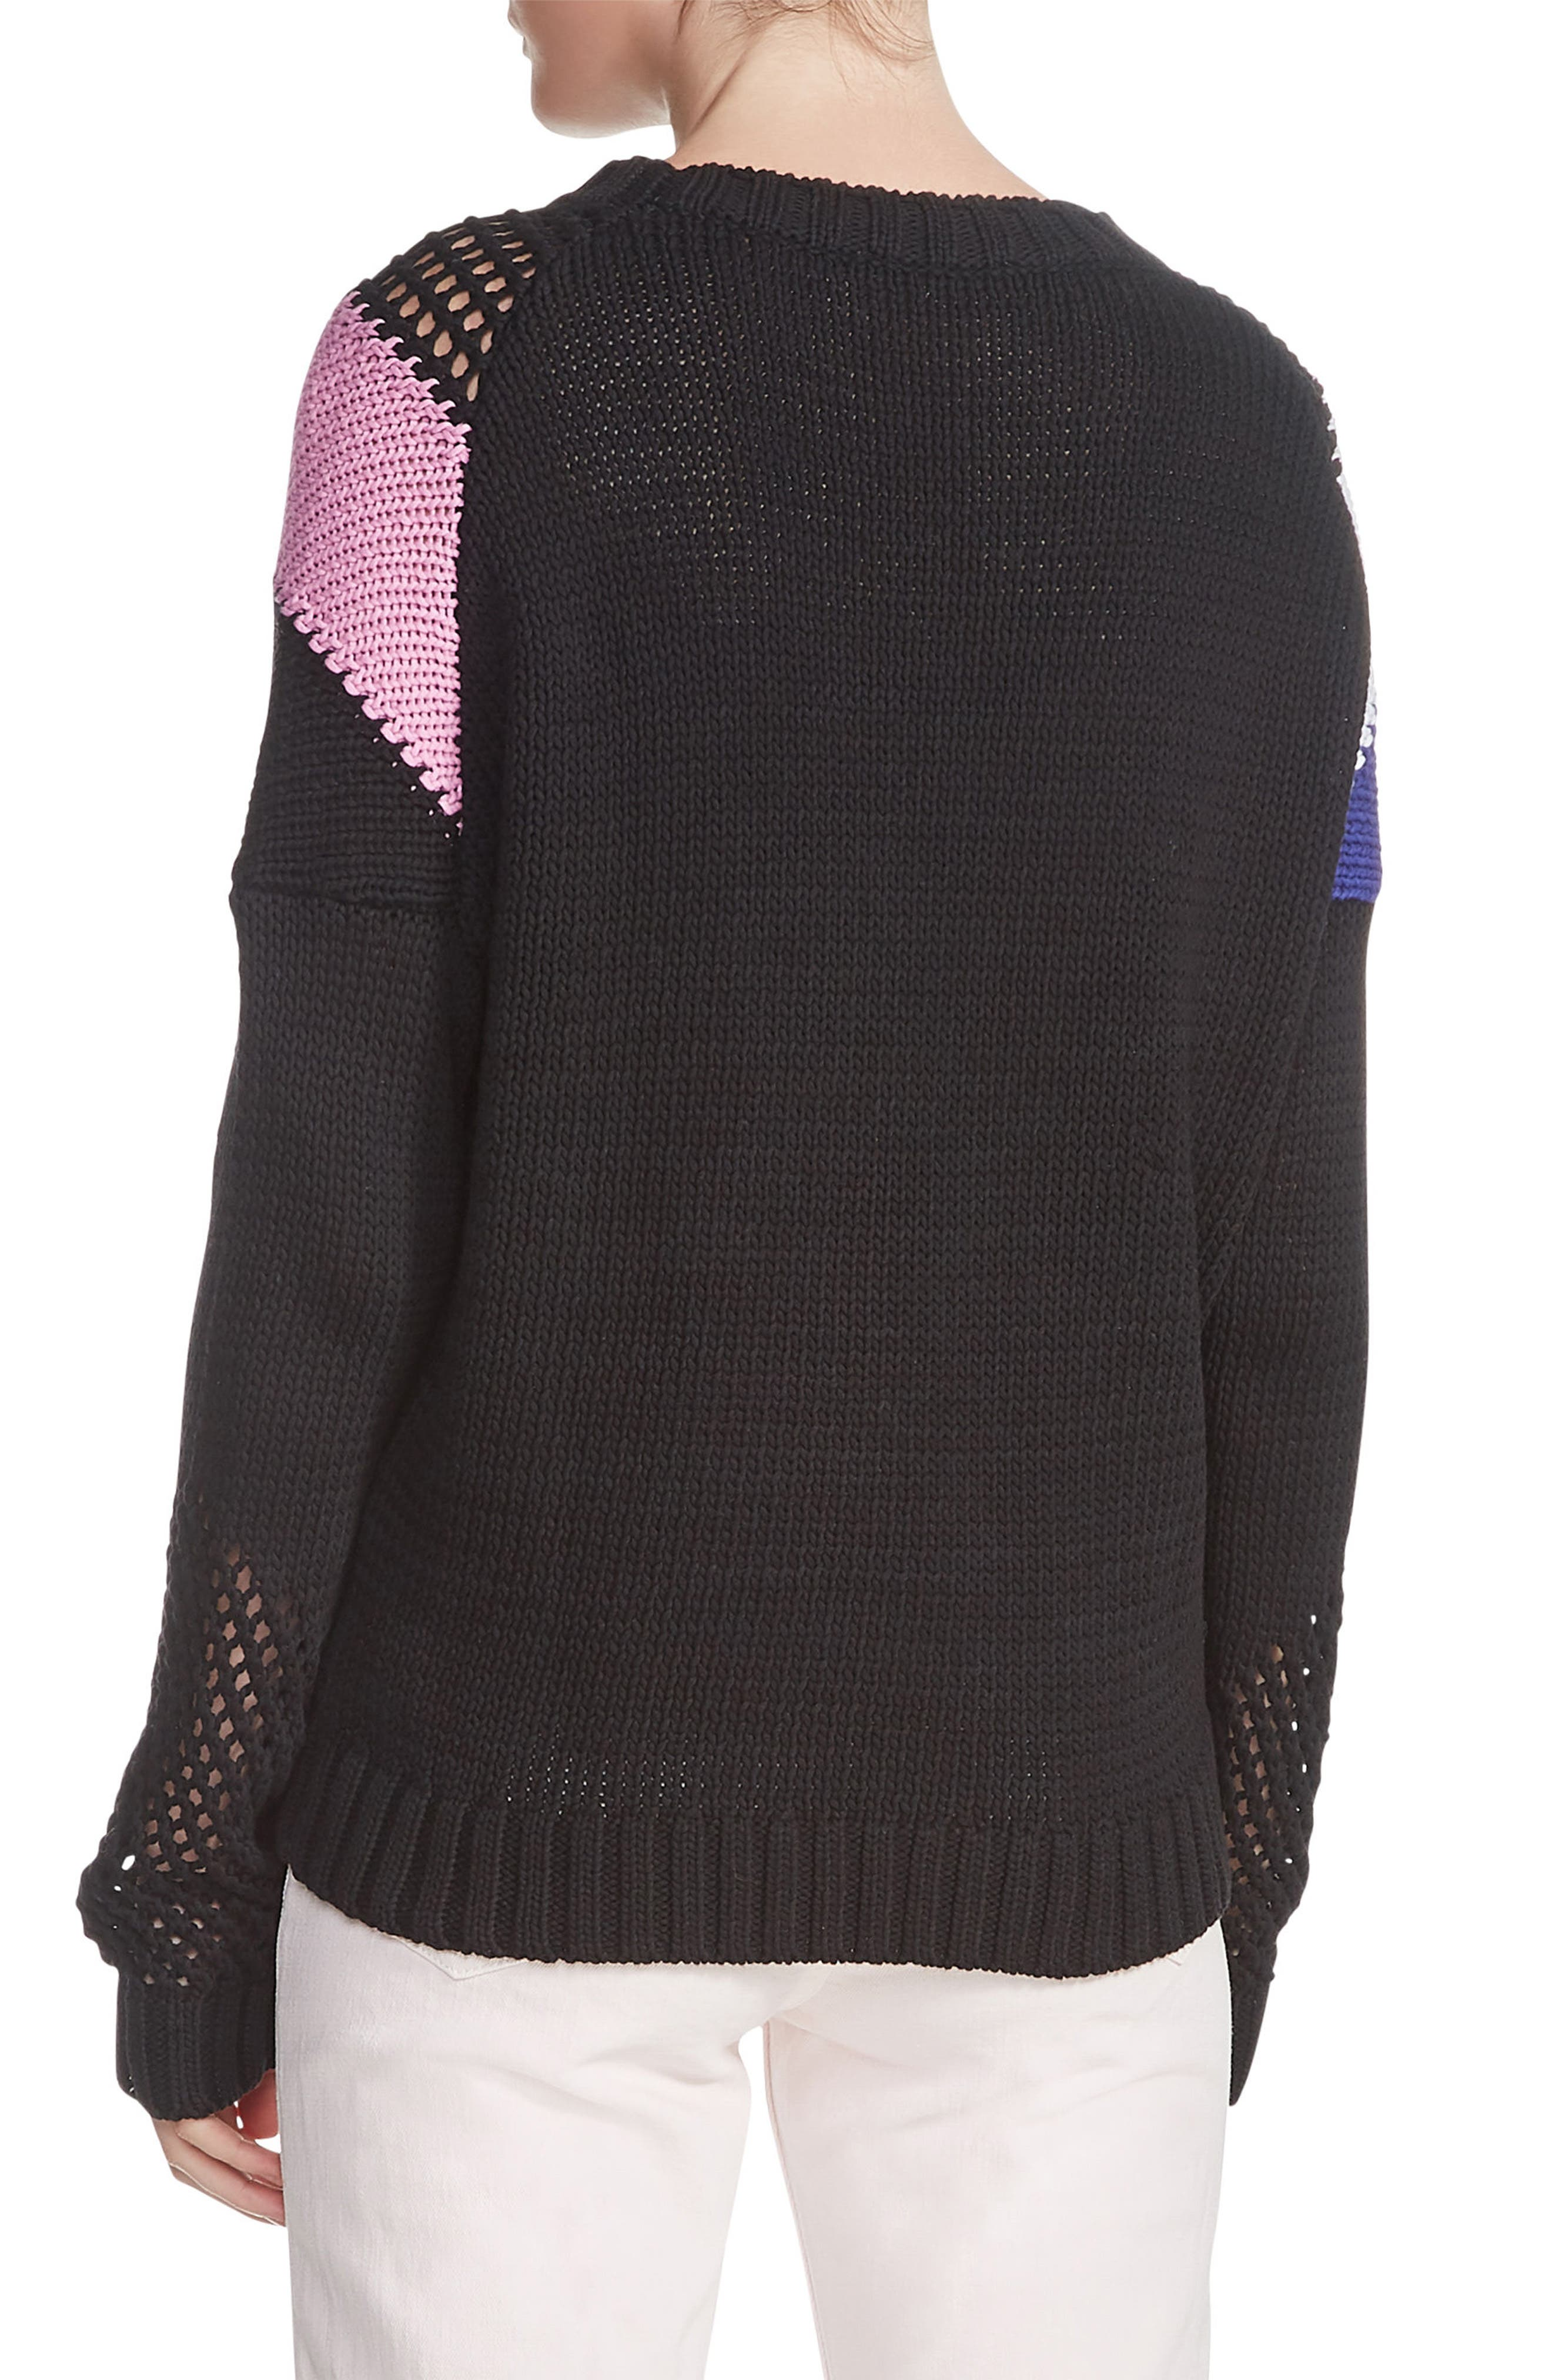 Marylene Sweater,                             Alternate thumbnail 2, color,                             Black